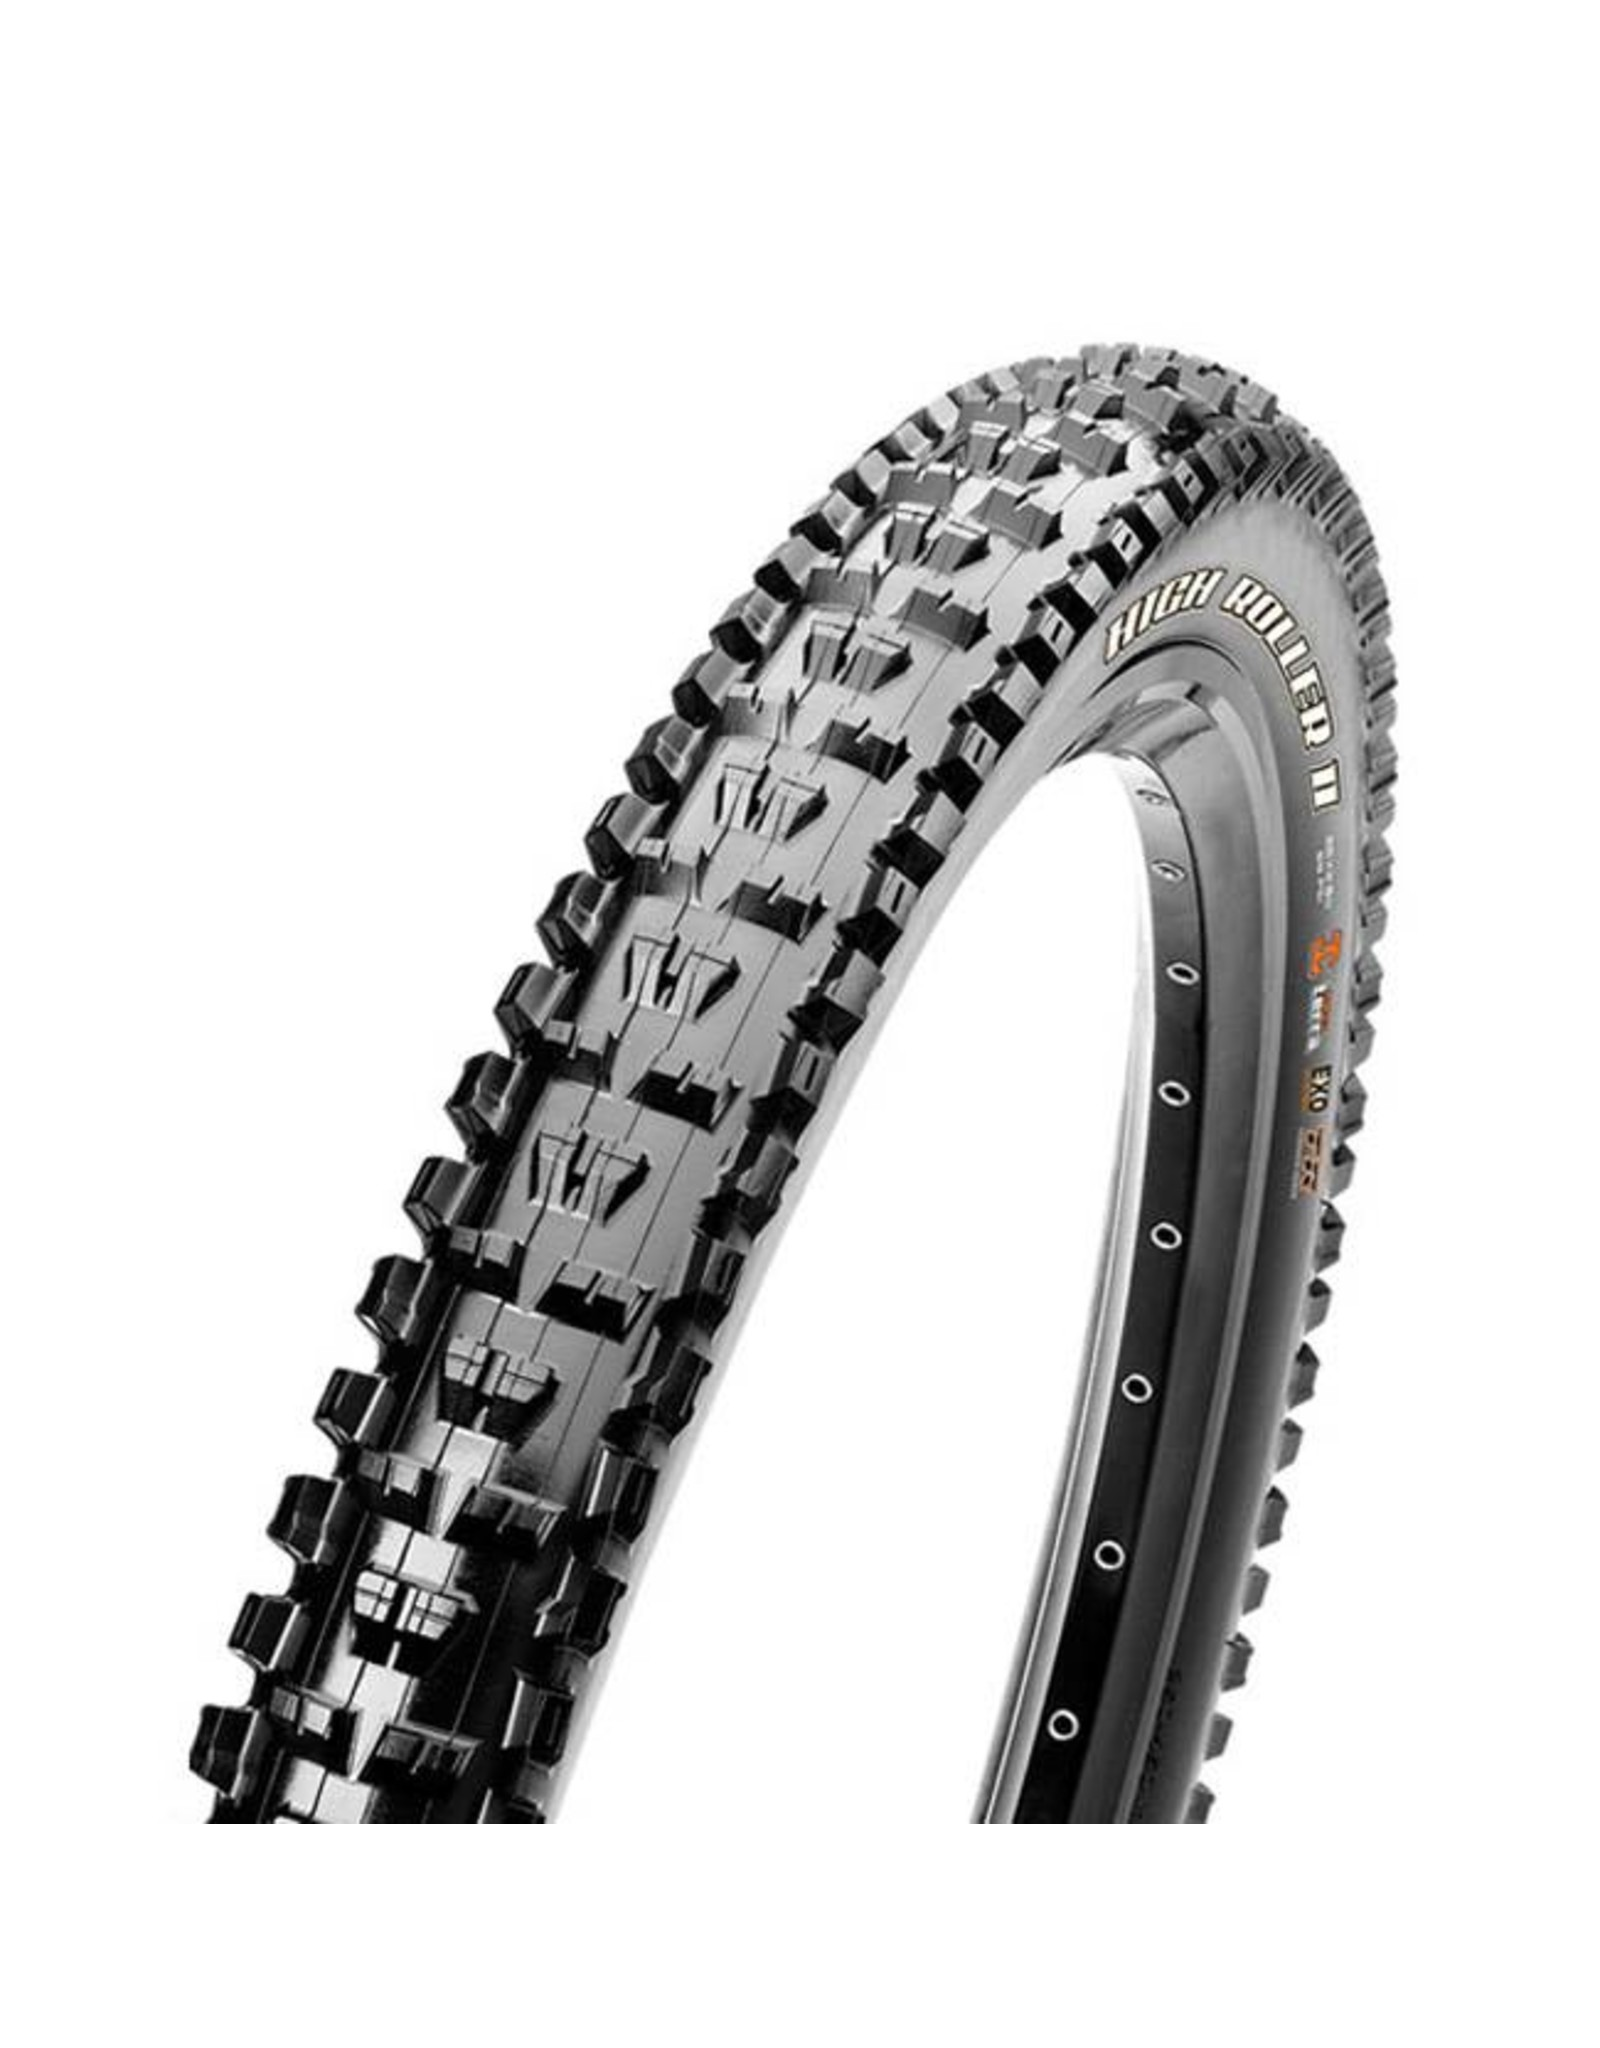 "Maxxis Maxxis High Roller II Tire: 29 x 2.30"", Folding, 60tpi, Dual Compound, EXO, Tubeless Ready, Black"